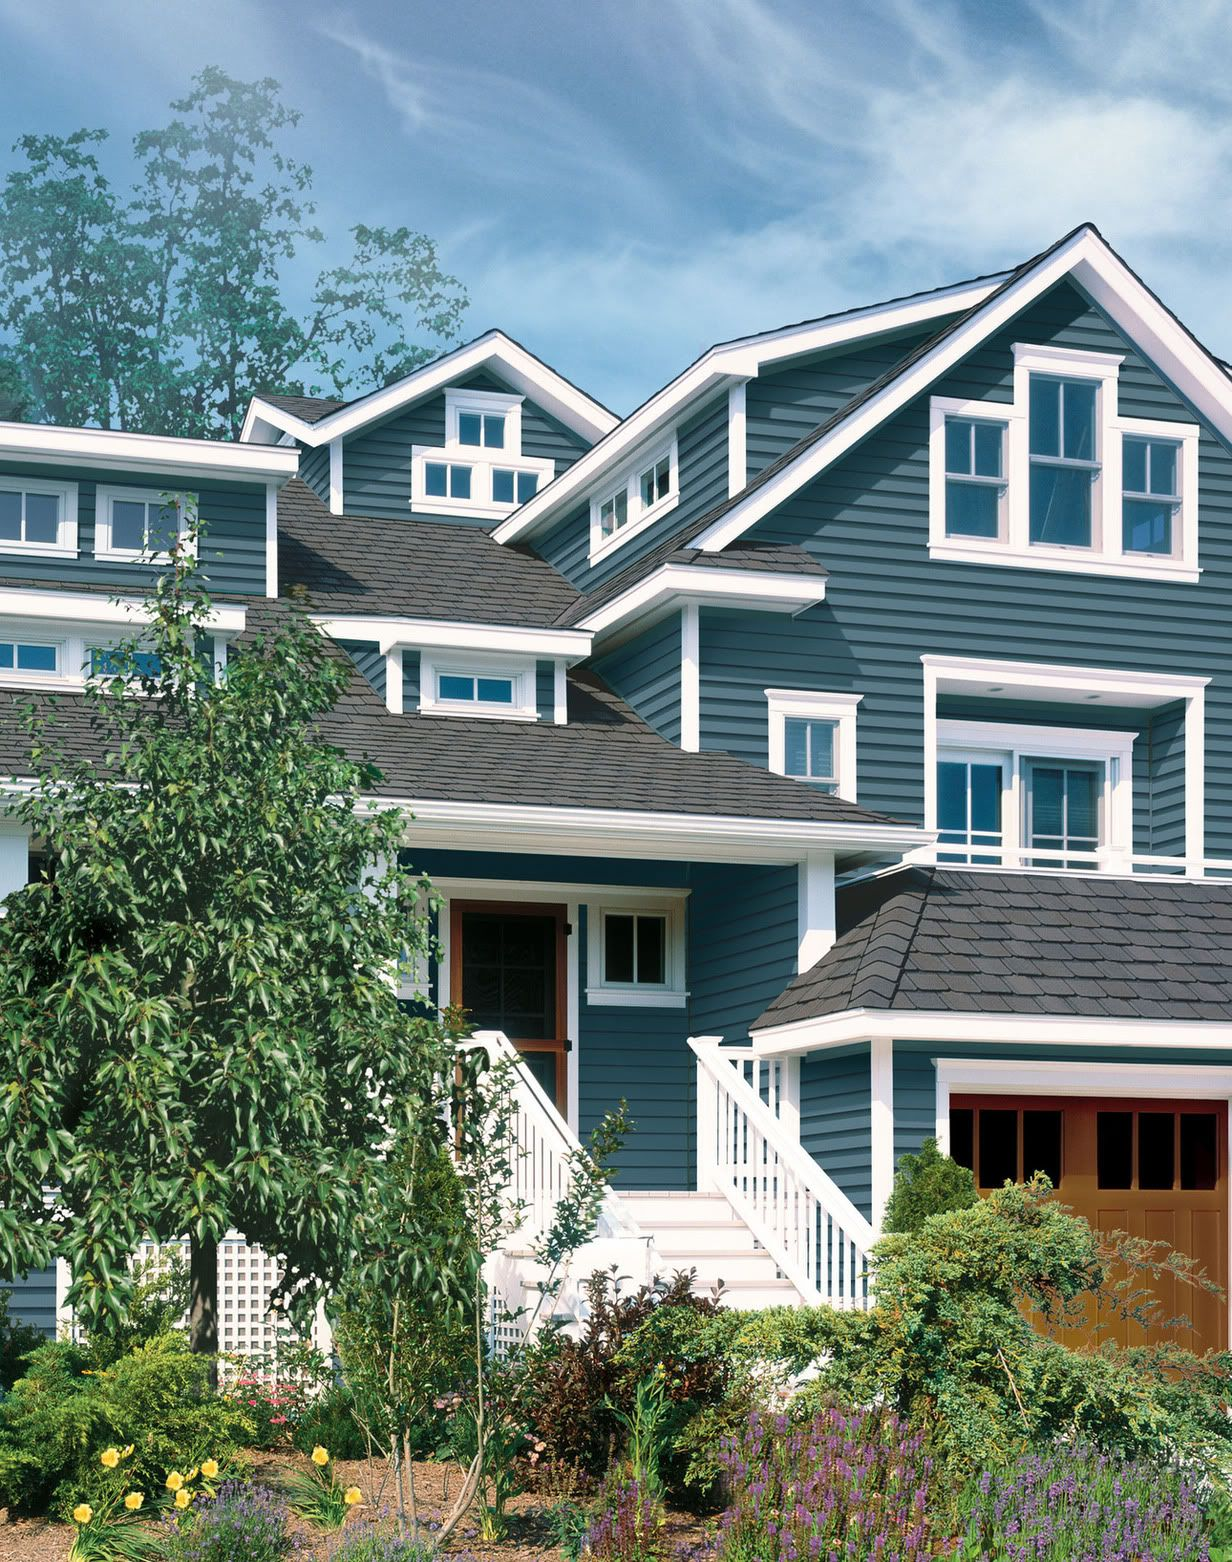 """Not sure if any of you remember my siding clicky poll a month or so ago, but we were deciding between """"Pacific Blue"""" and """"Flagstone Gray"""" for the siding on our house."""